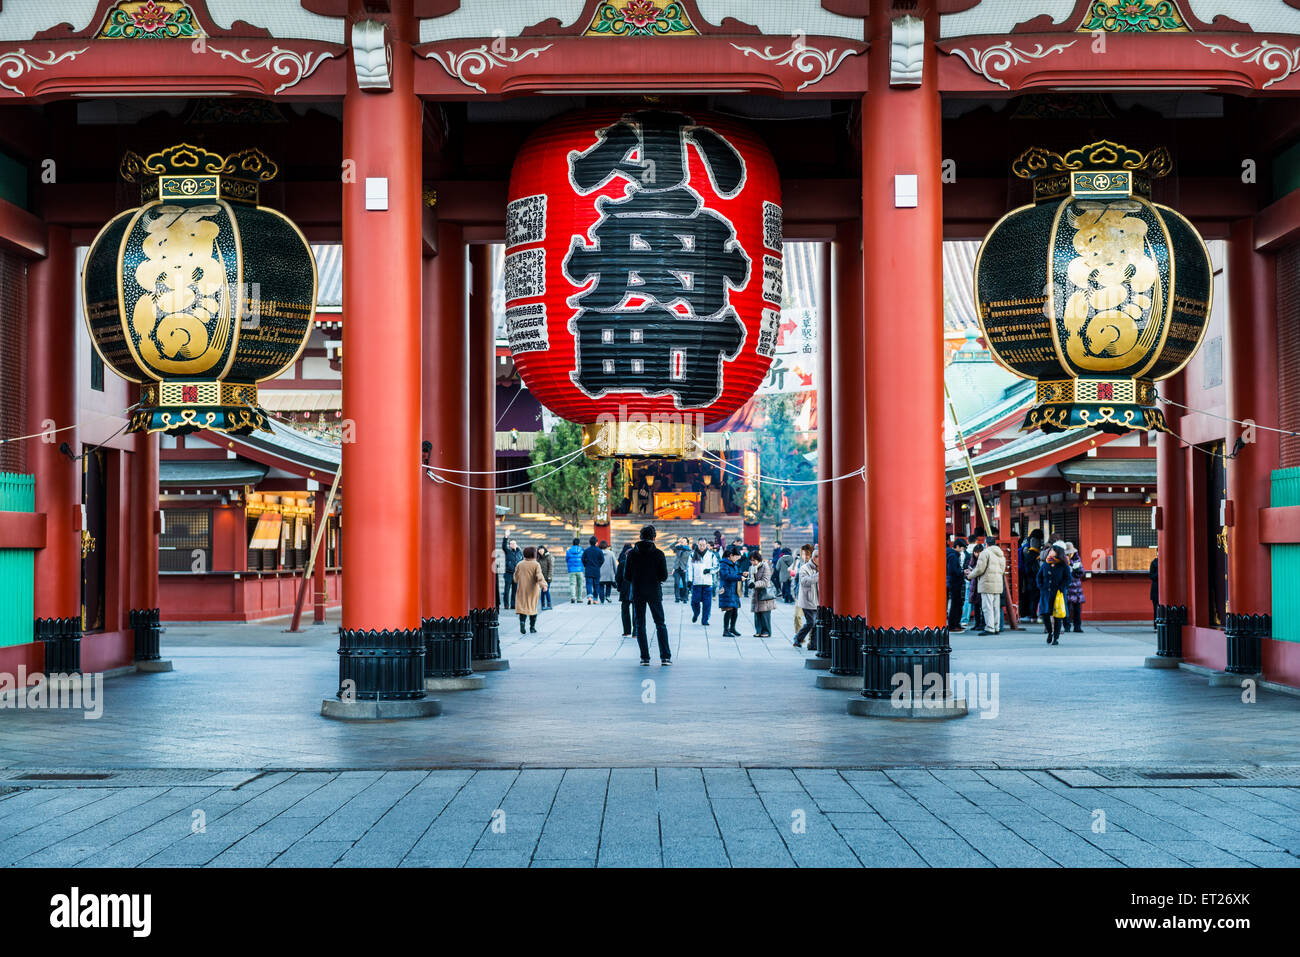 The Hozomon gate of Sensoji Temple in Tokyo, Japan, during New Year celebrations. The temple is the oldest in Tokyo - Stock Image